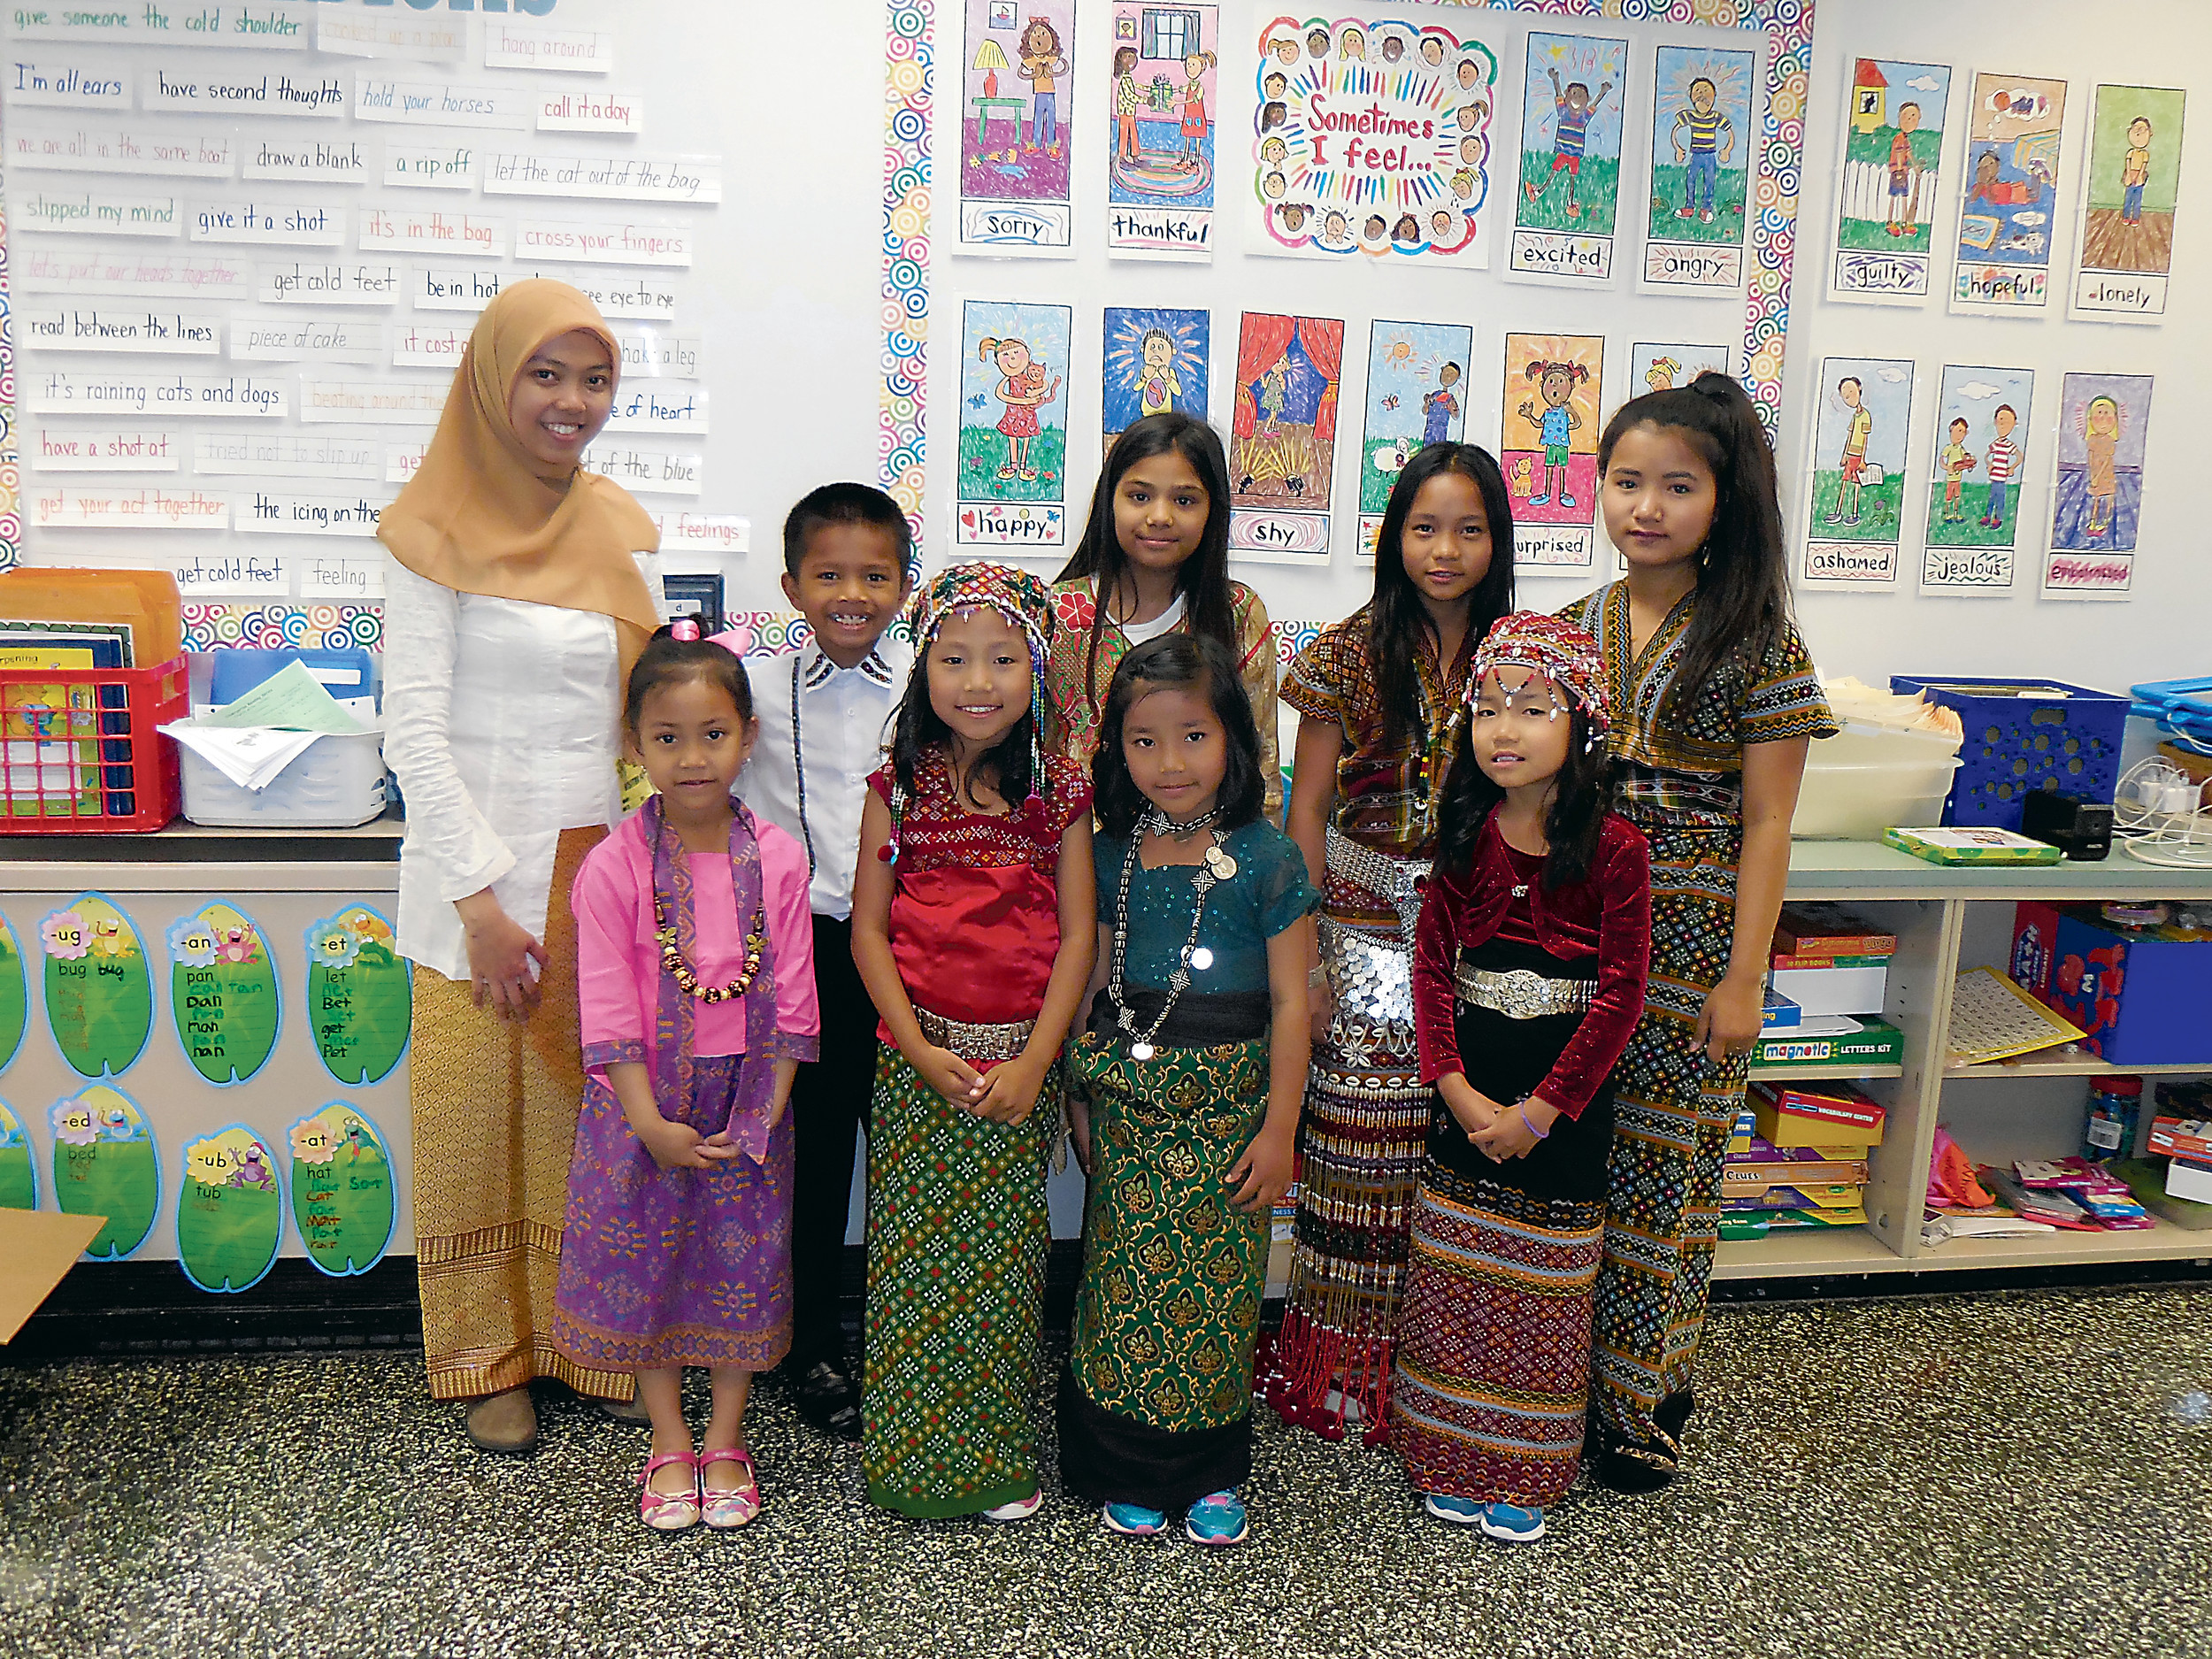 Cultural Day at Fink provided students the opportunity to learn about various countries. In the back row left to right is Indonesia presenter Ayu Inayati Shoim, David Tling, Aman Azim, Bawi Ian, and Sang Pui. In the front left to right are Mafaza Nugroho, Christina Eng, Enita Hniang, and Elisa Hoi Par.